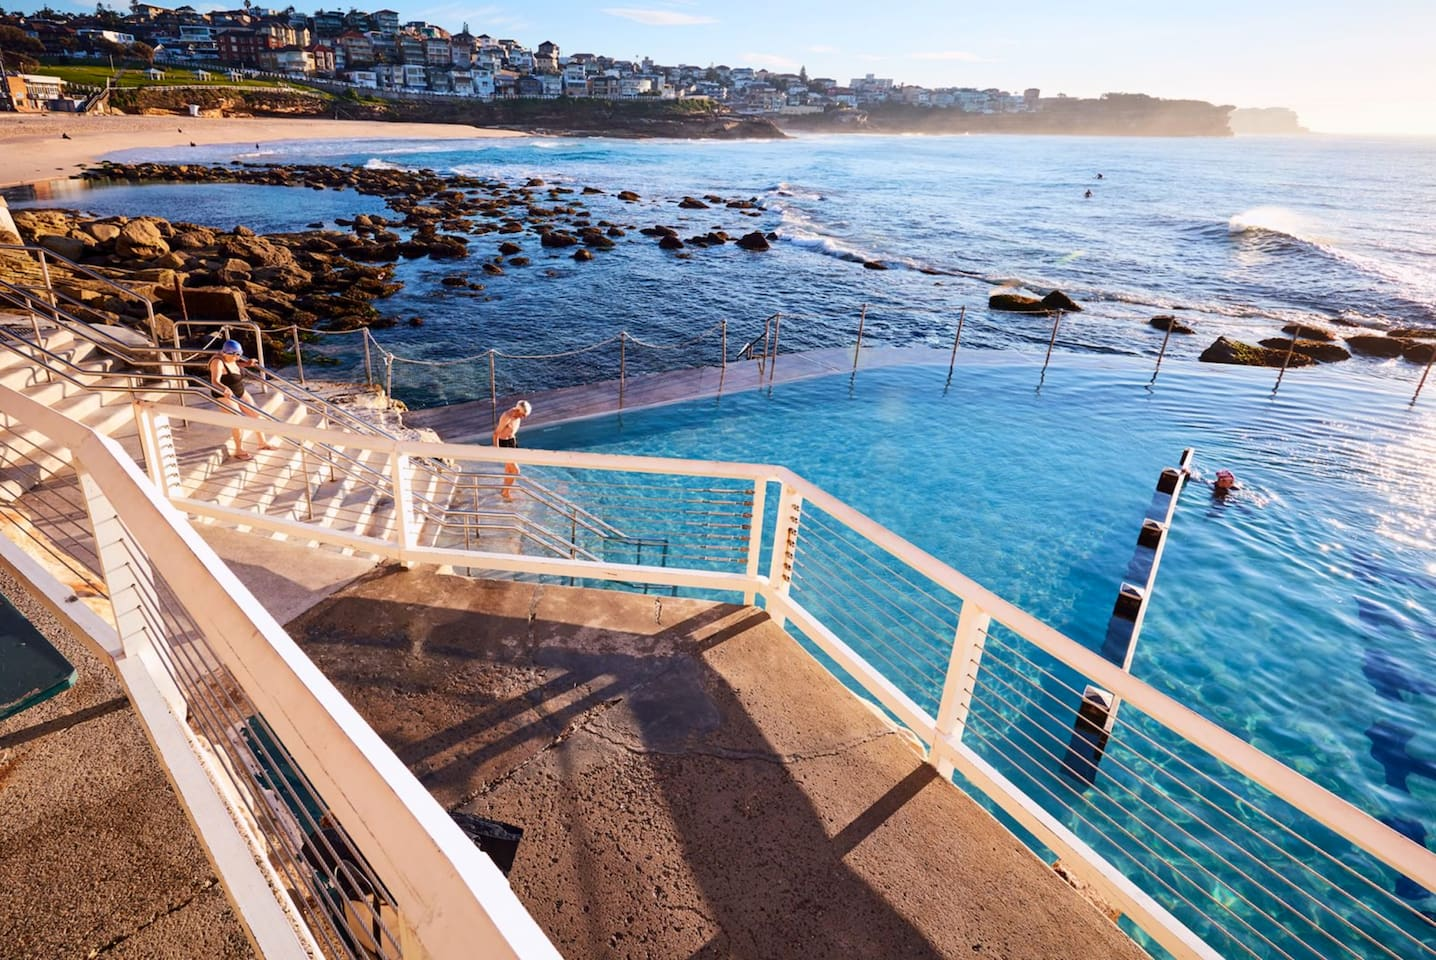 Bronte beach and pools (15 minute walk or public transport/uber available).